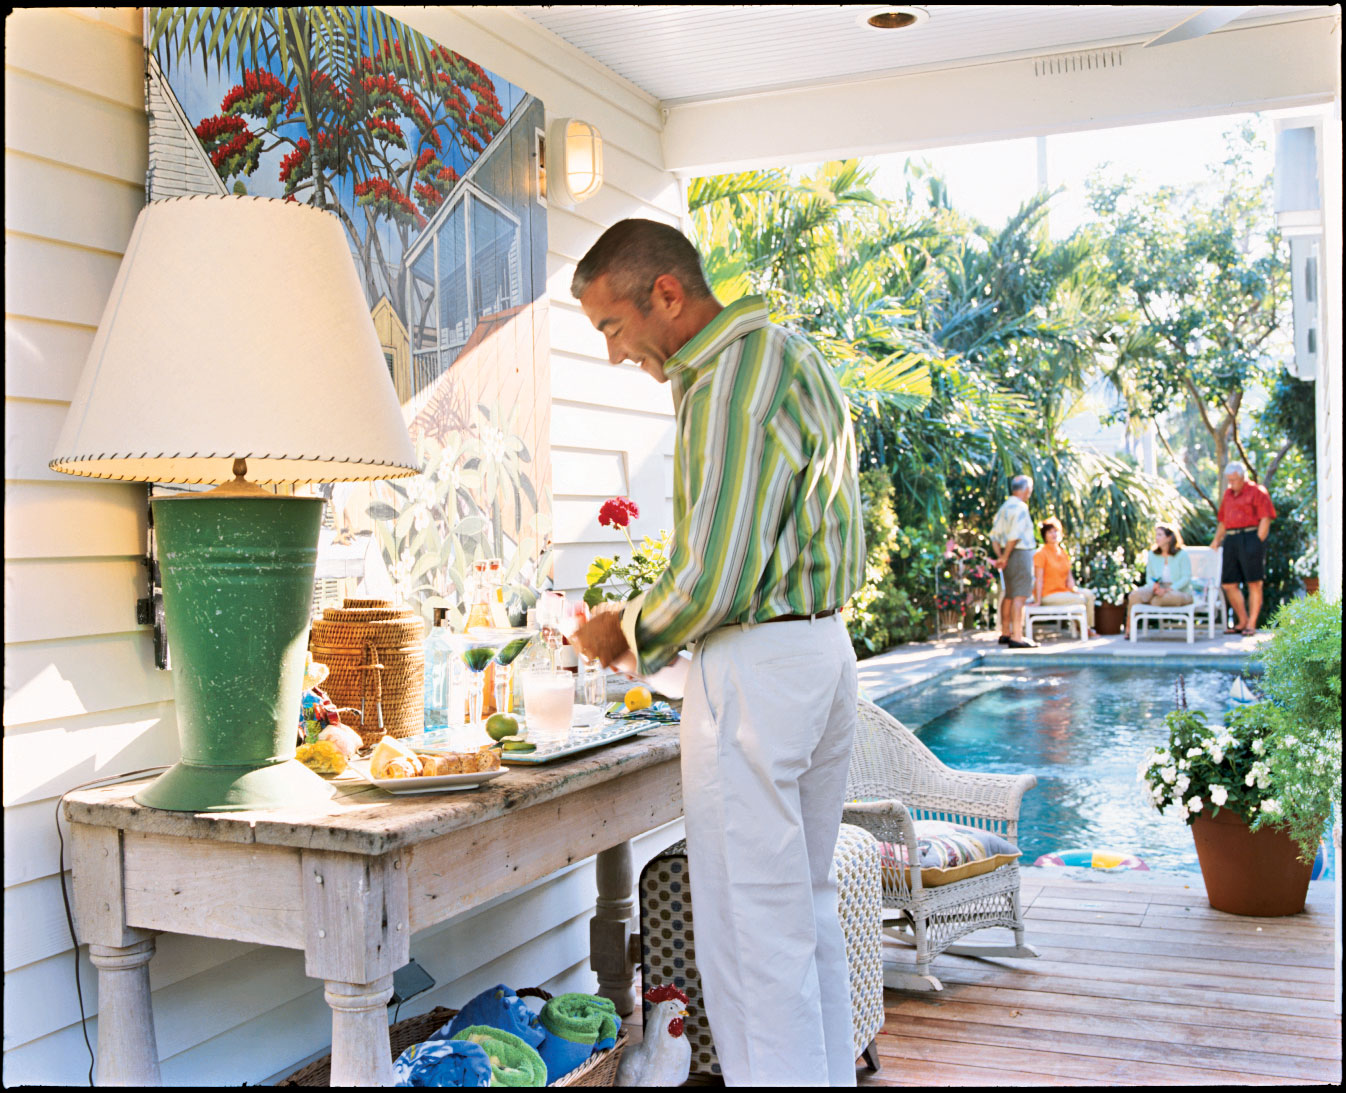 A poolside bar invites guests outside. A painting by Key West artist Rick Worth, created with automobile paint, can withstand the elements.